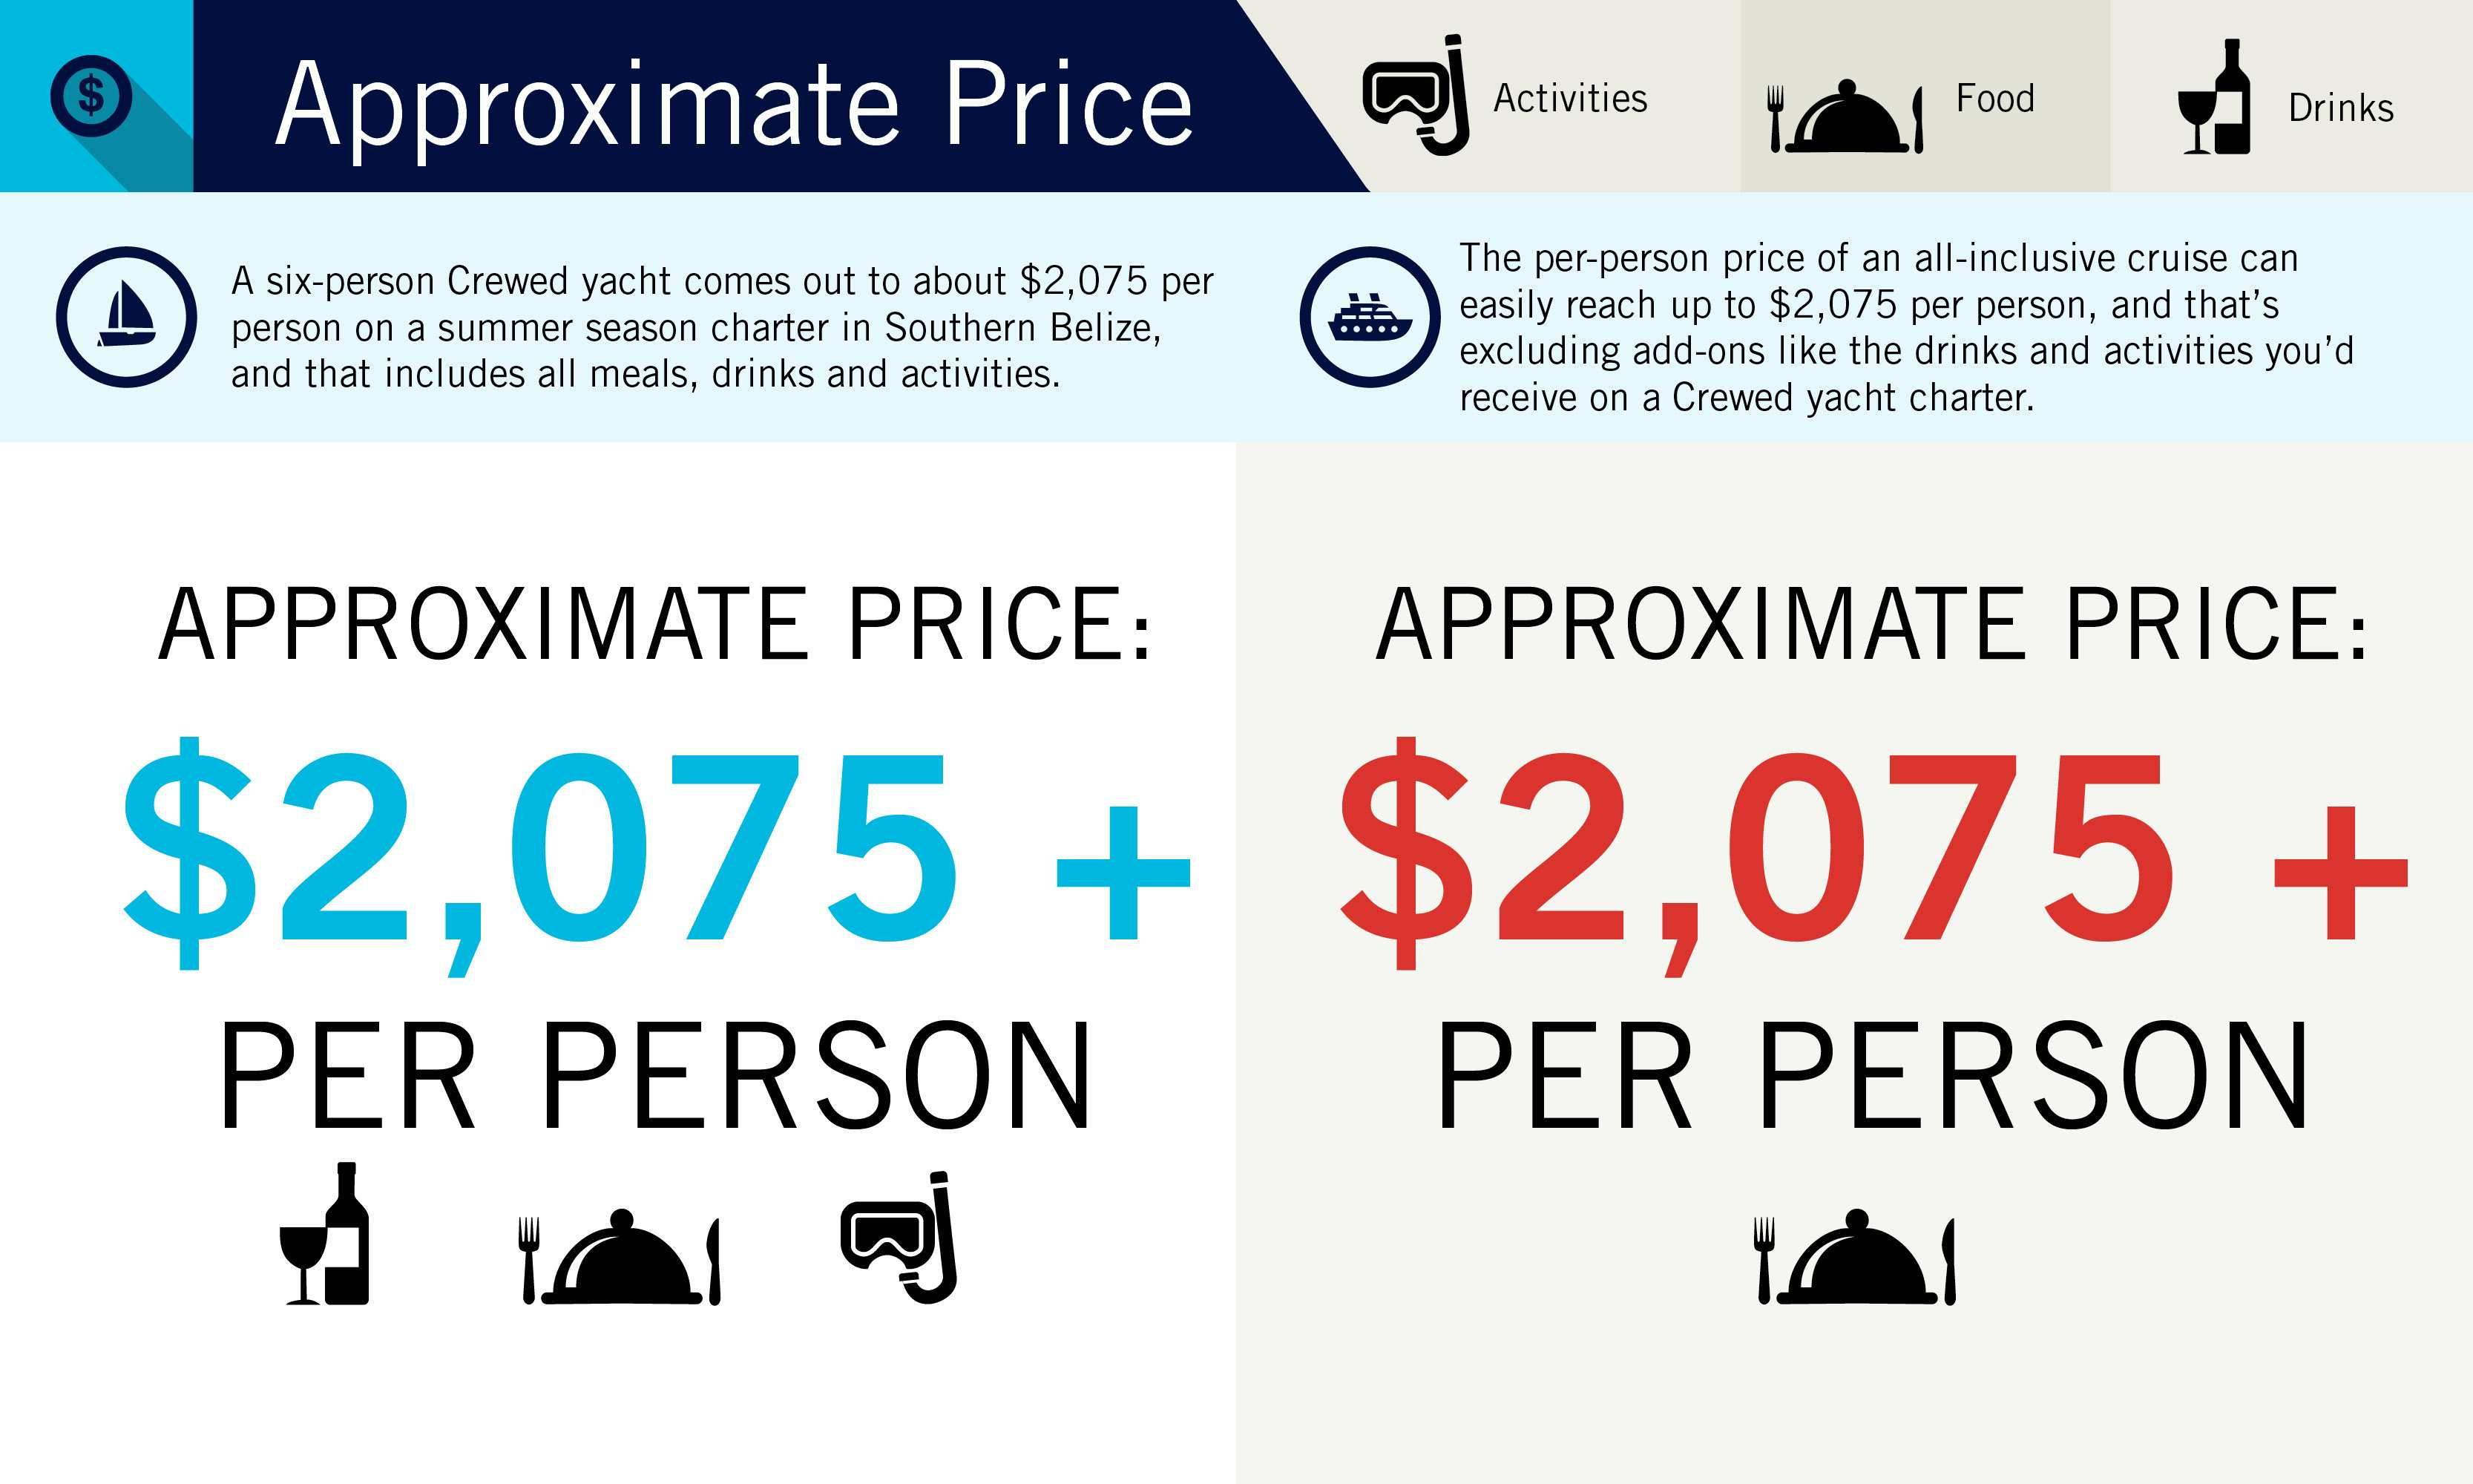 Approximate Price